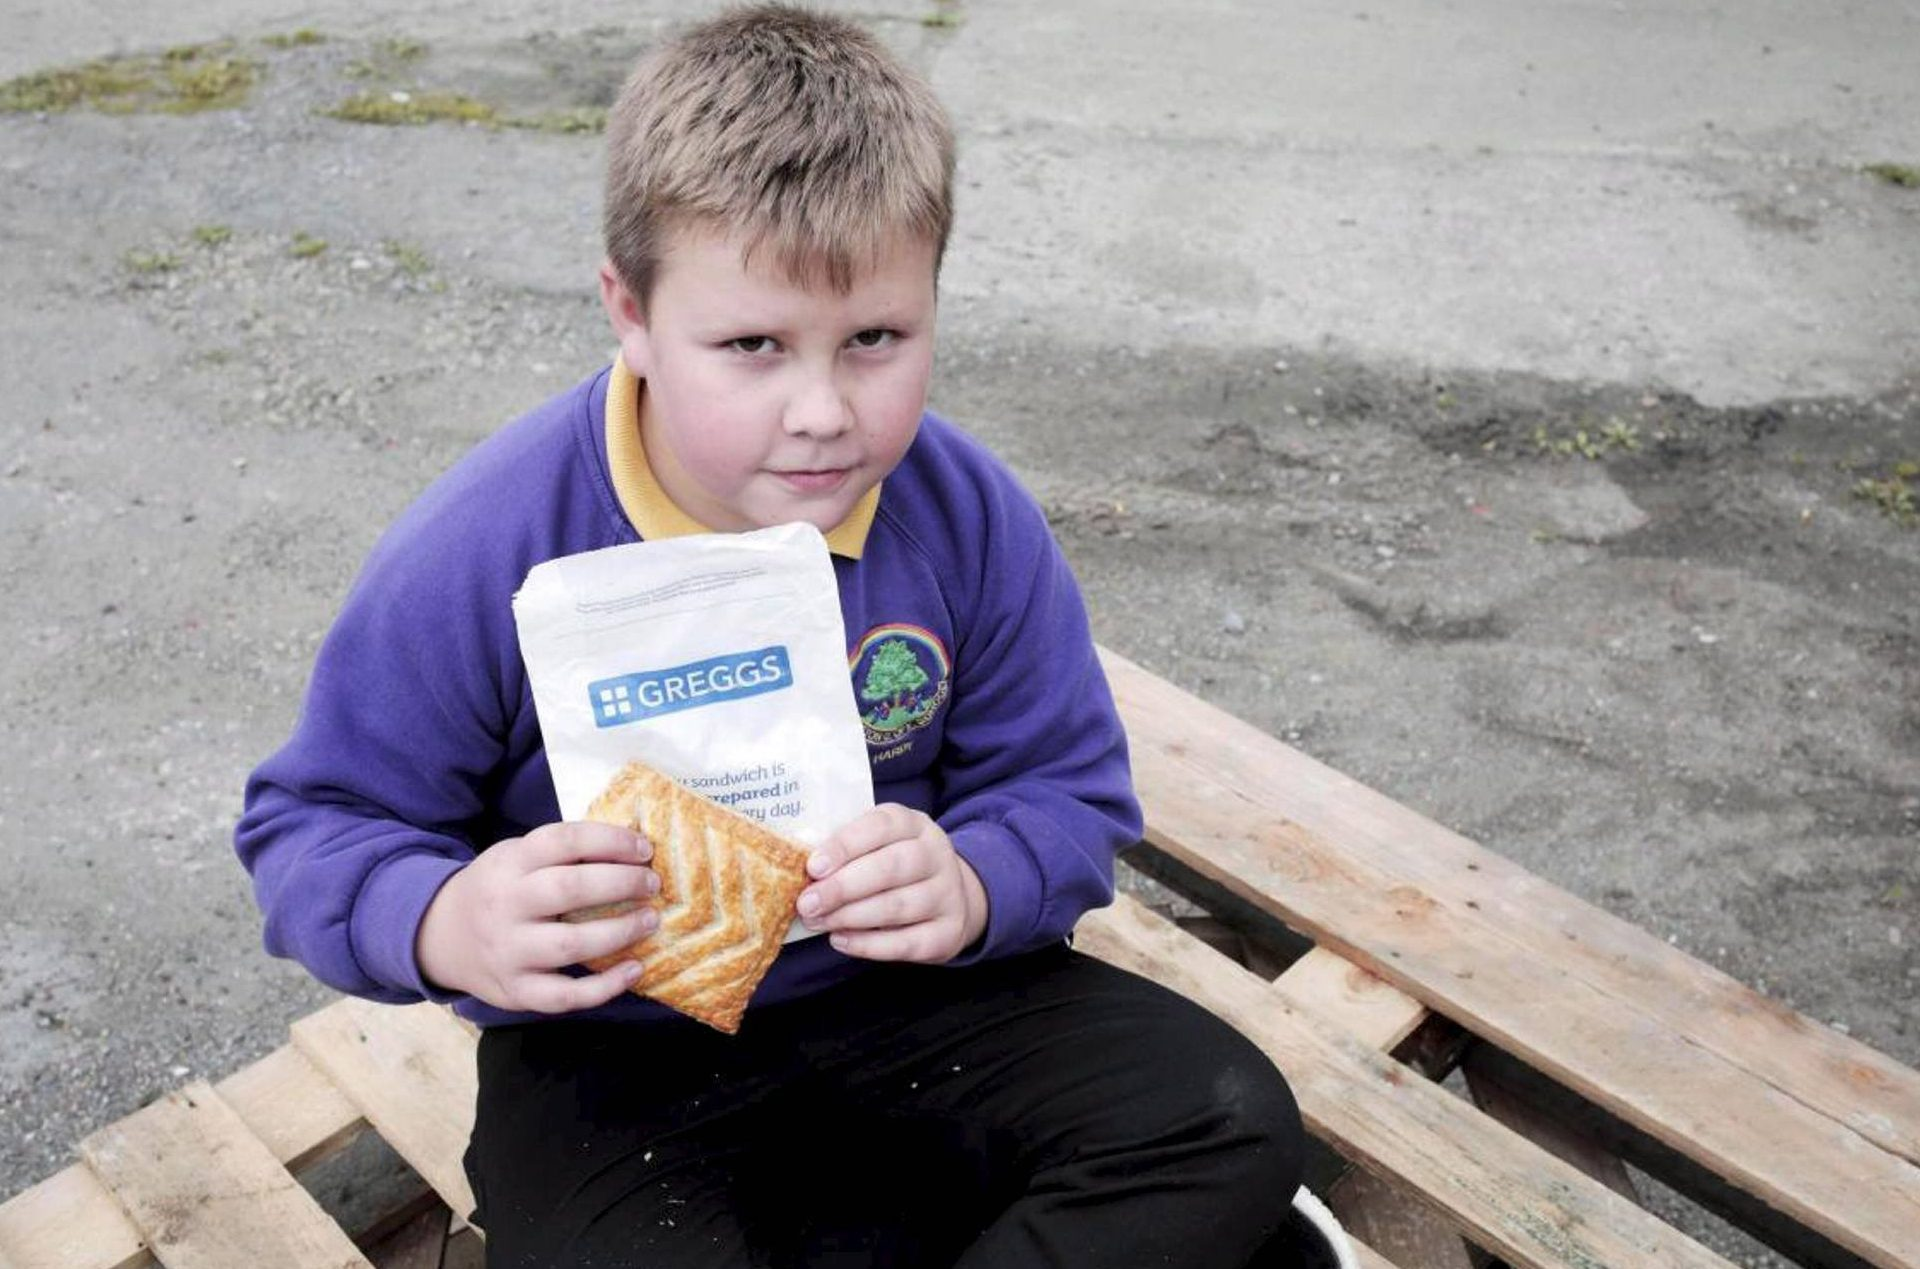 Dated: 16/09/2018 Nine-year-old Henry Hardy, from Staindrop, County Durham, who was shocked to find chunks of WOOD from a pallet inside his Greggs cheese and onion pasty, to the horror of his mum Julie Dent. See story North News